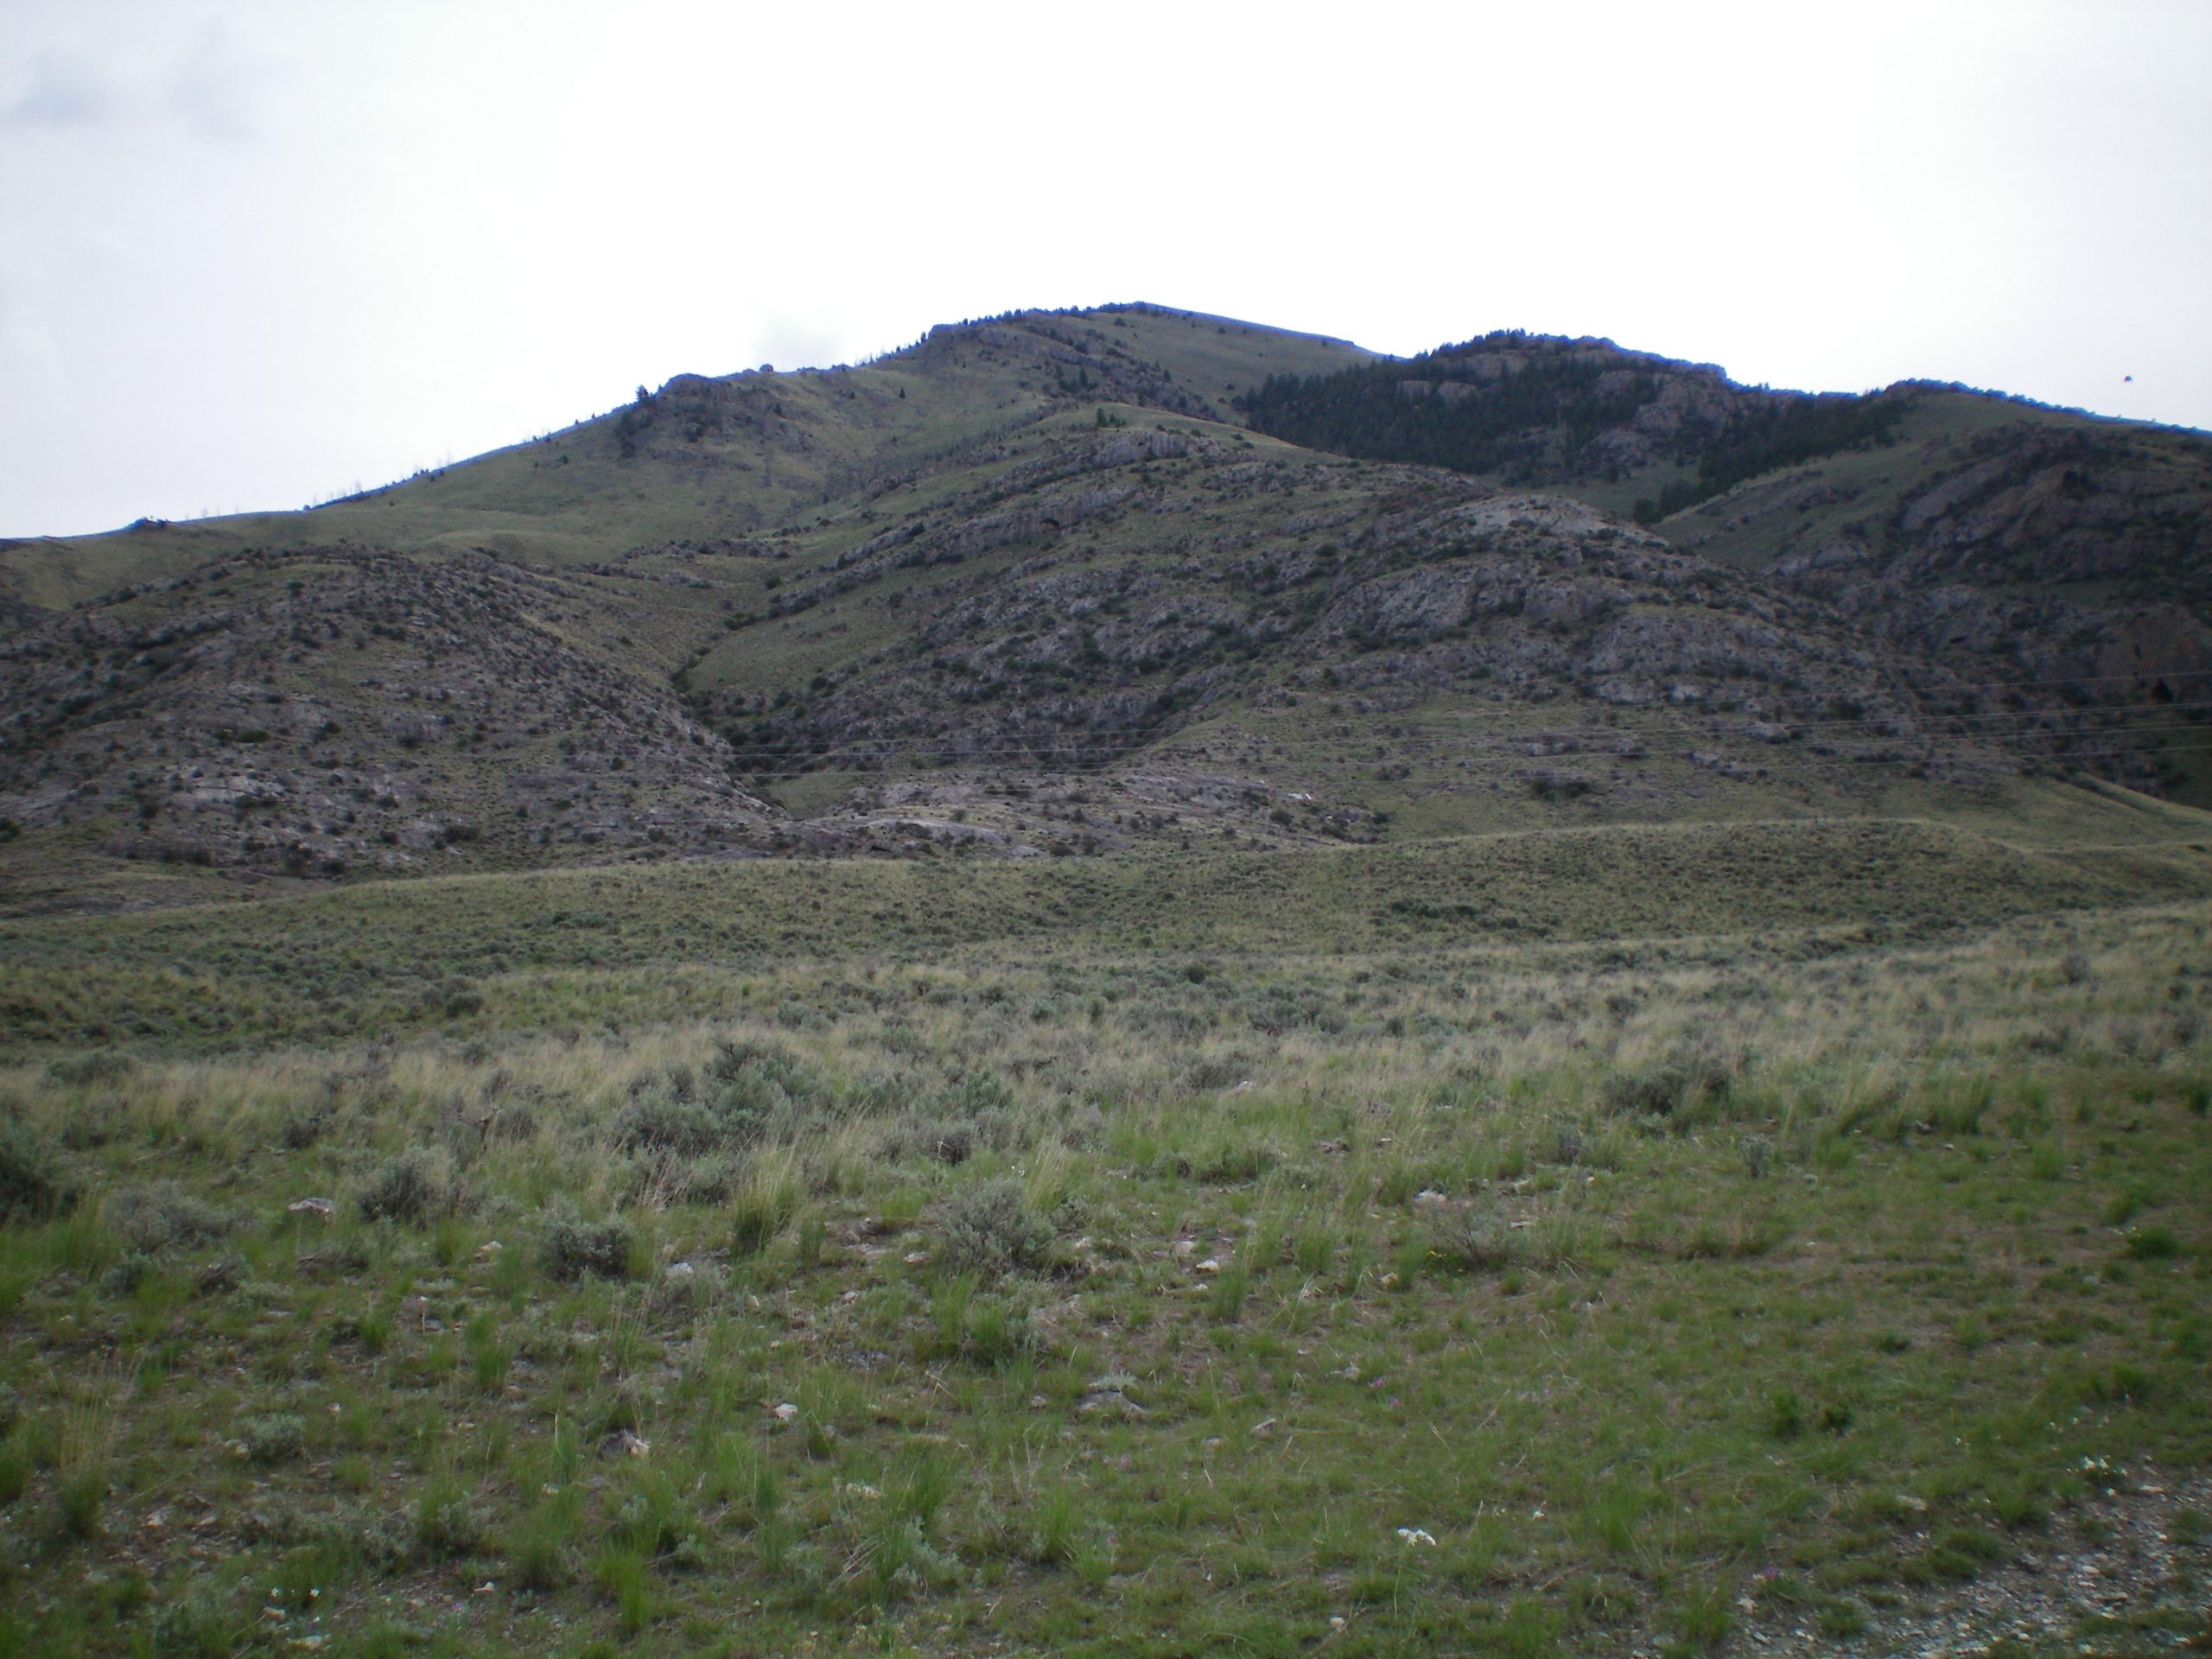 View of the West Ridge Route (the ridge in the middle) from the parking spot at the cattle fence/gate. Notice how rocky and rugged the initial section of the West Ridge is. Livingston Douglas Photo